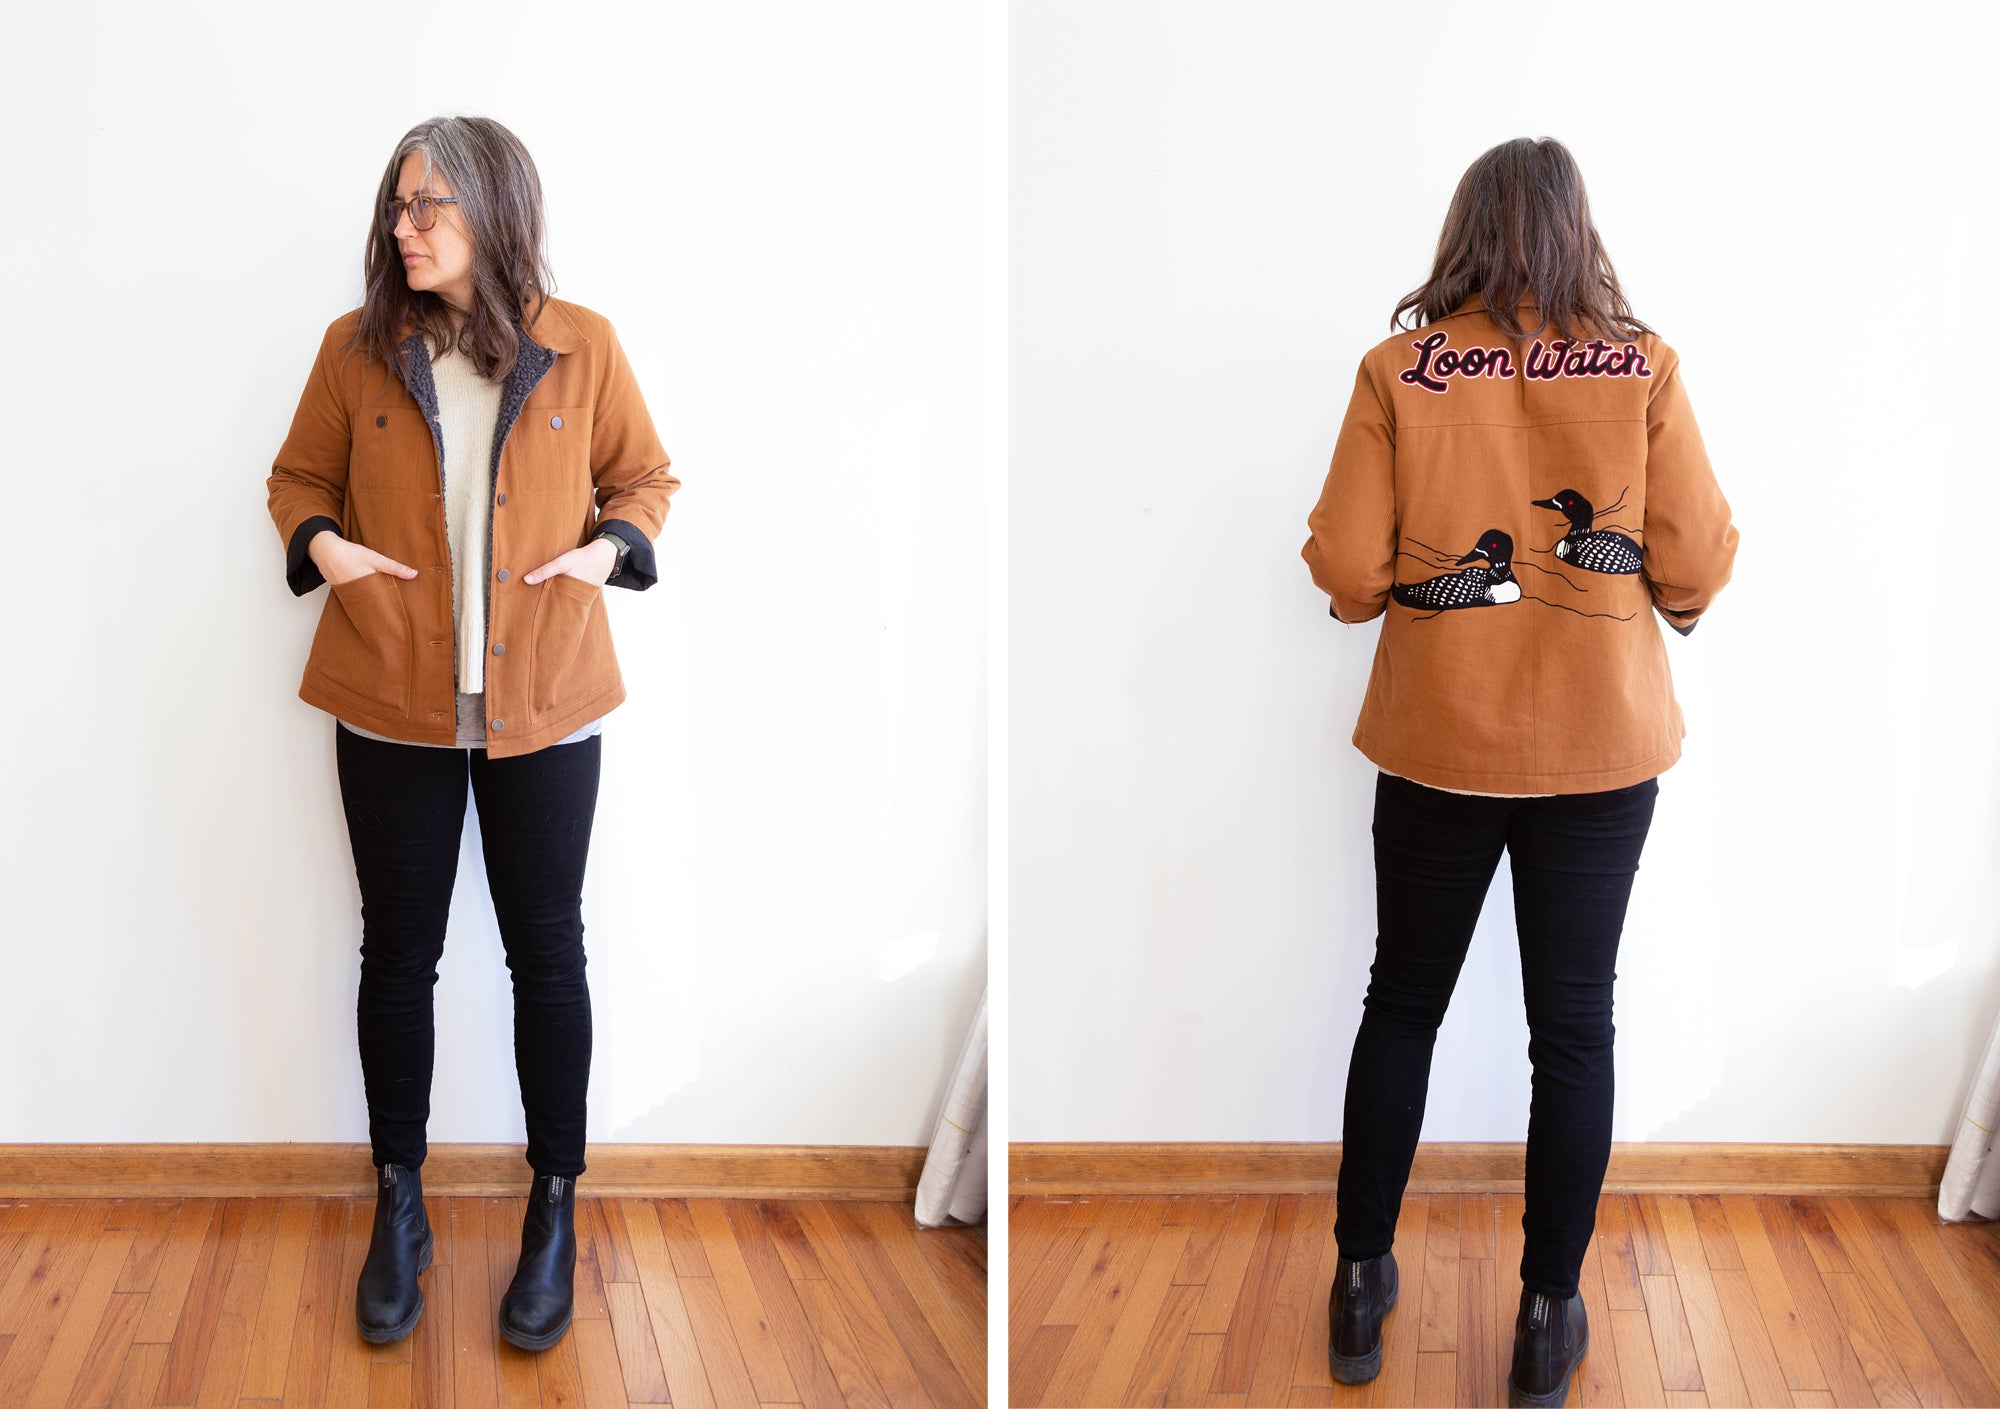 Jen's Thayer Jacket | Grainline Studio